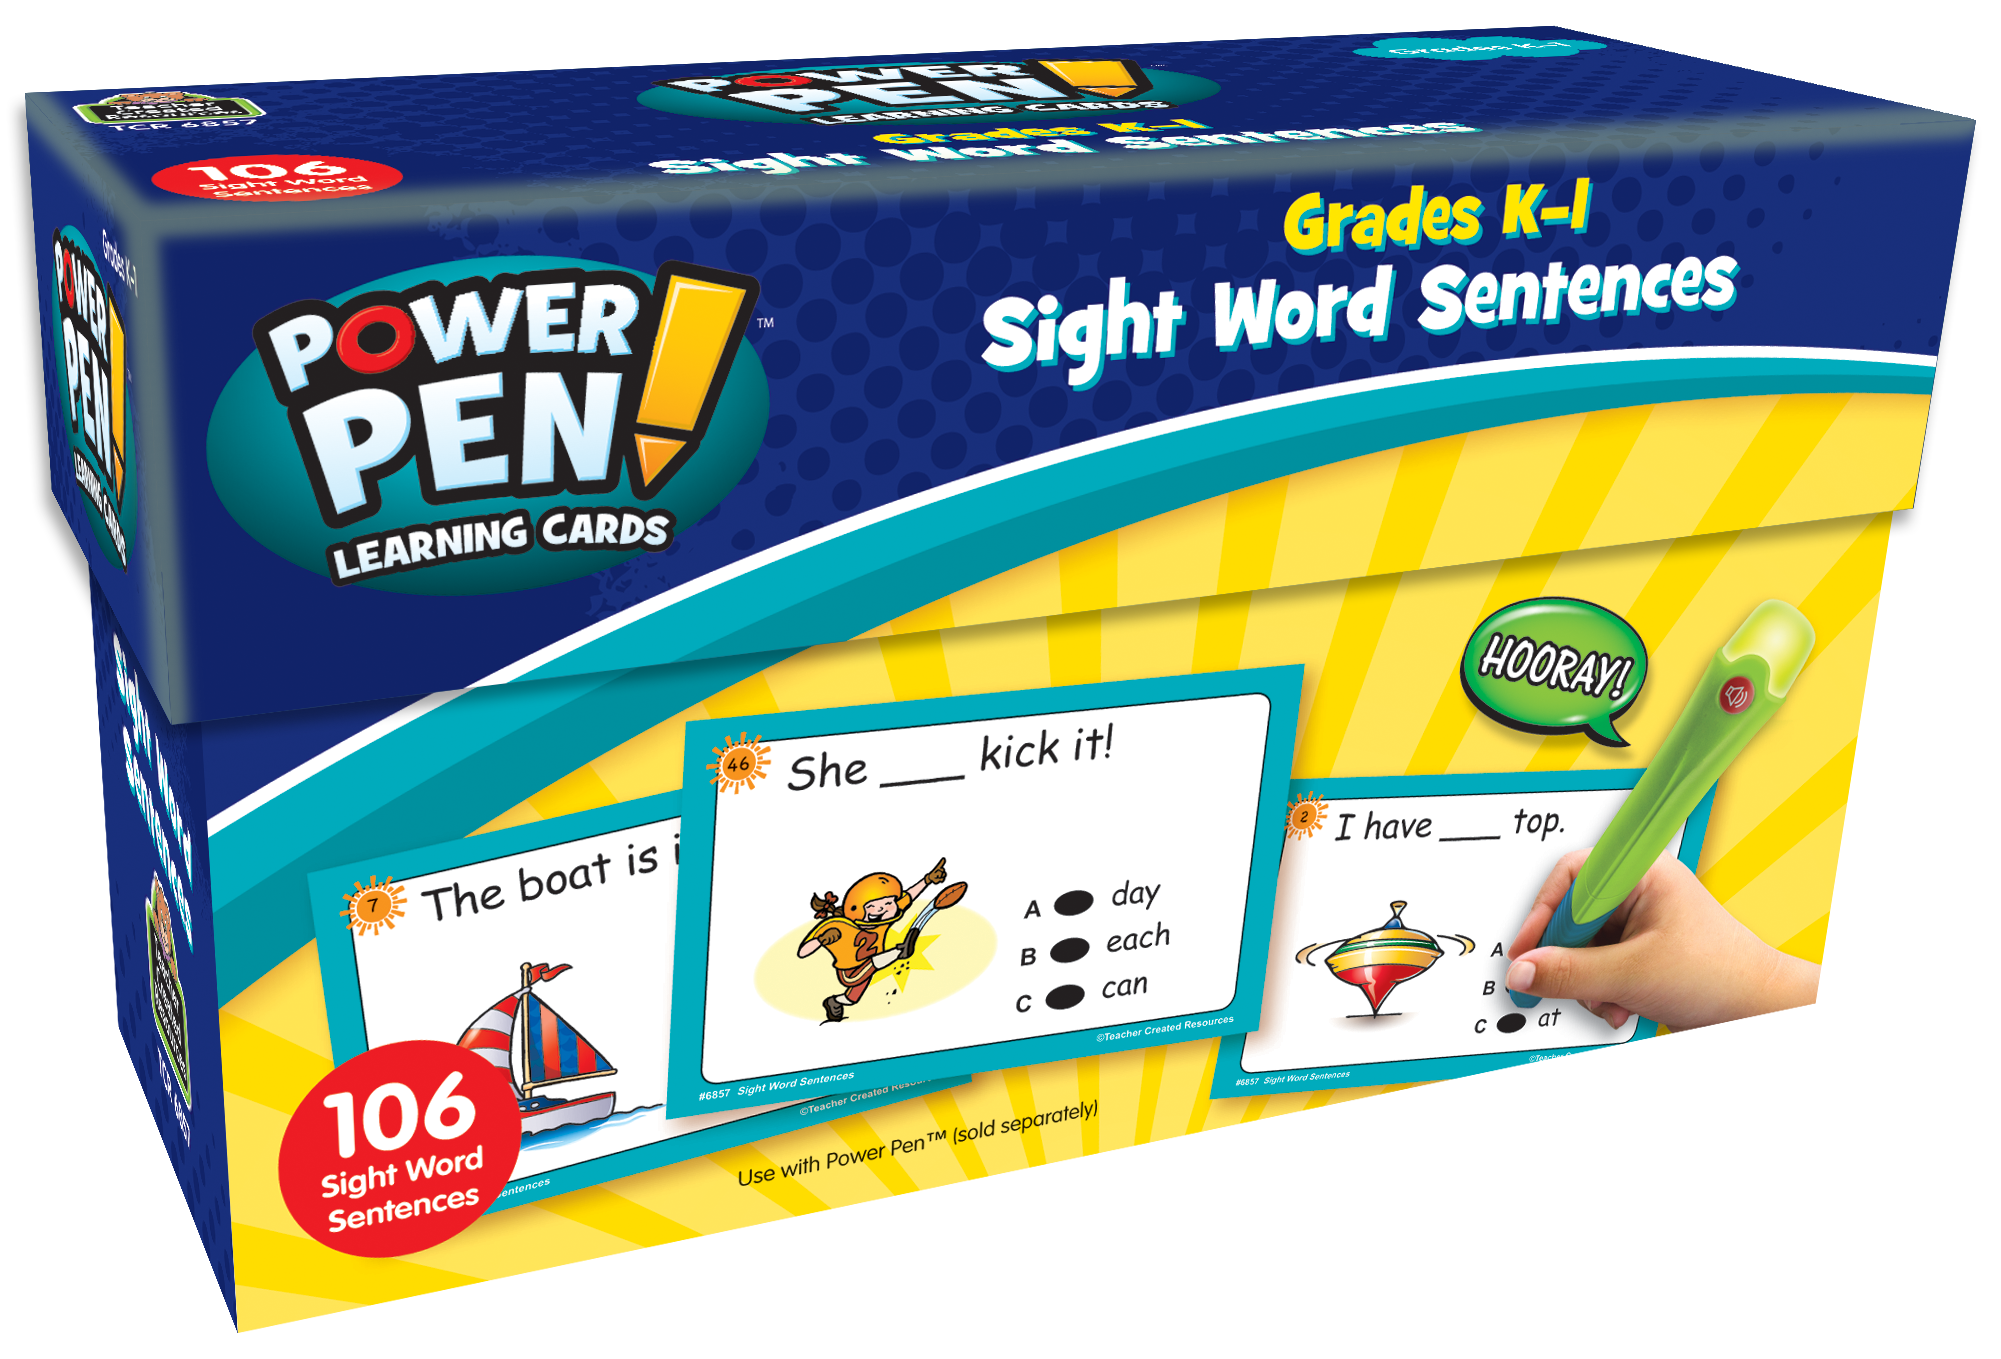 Power Pen Learning Cards: Sight Word Sentences